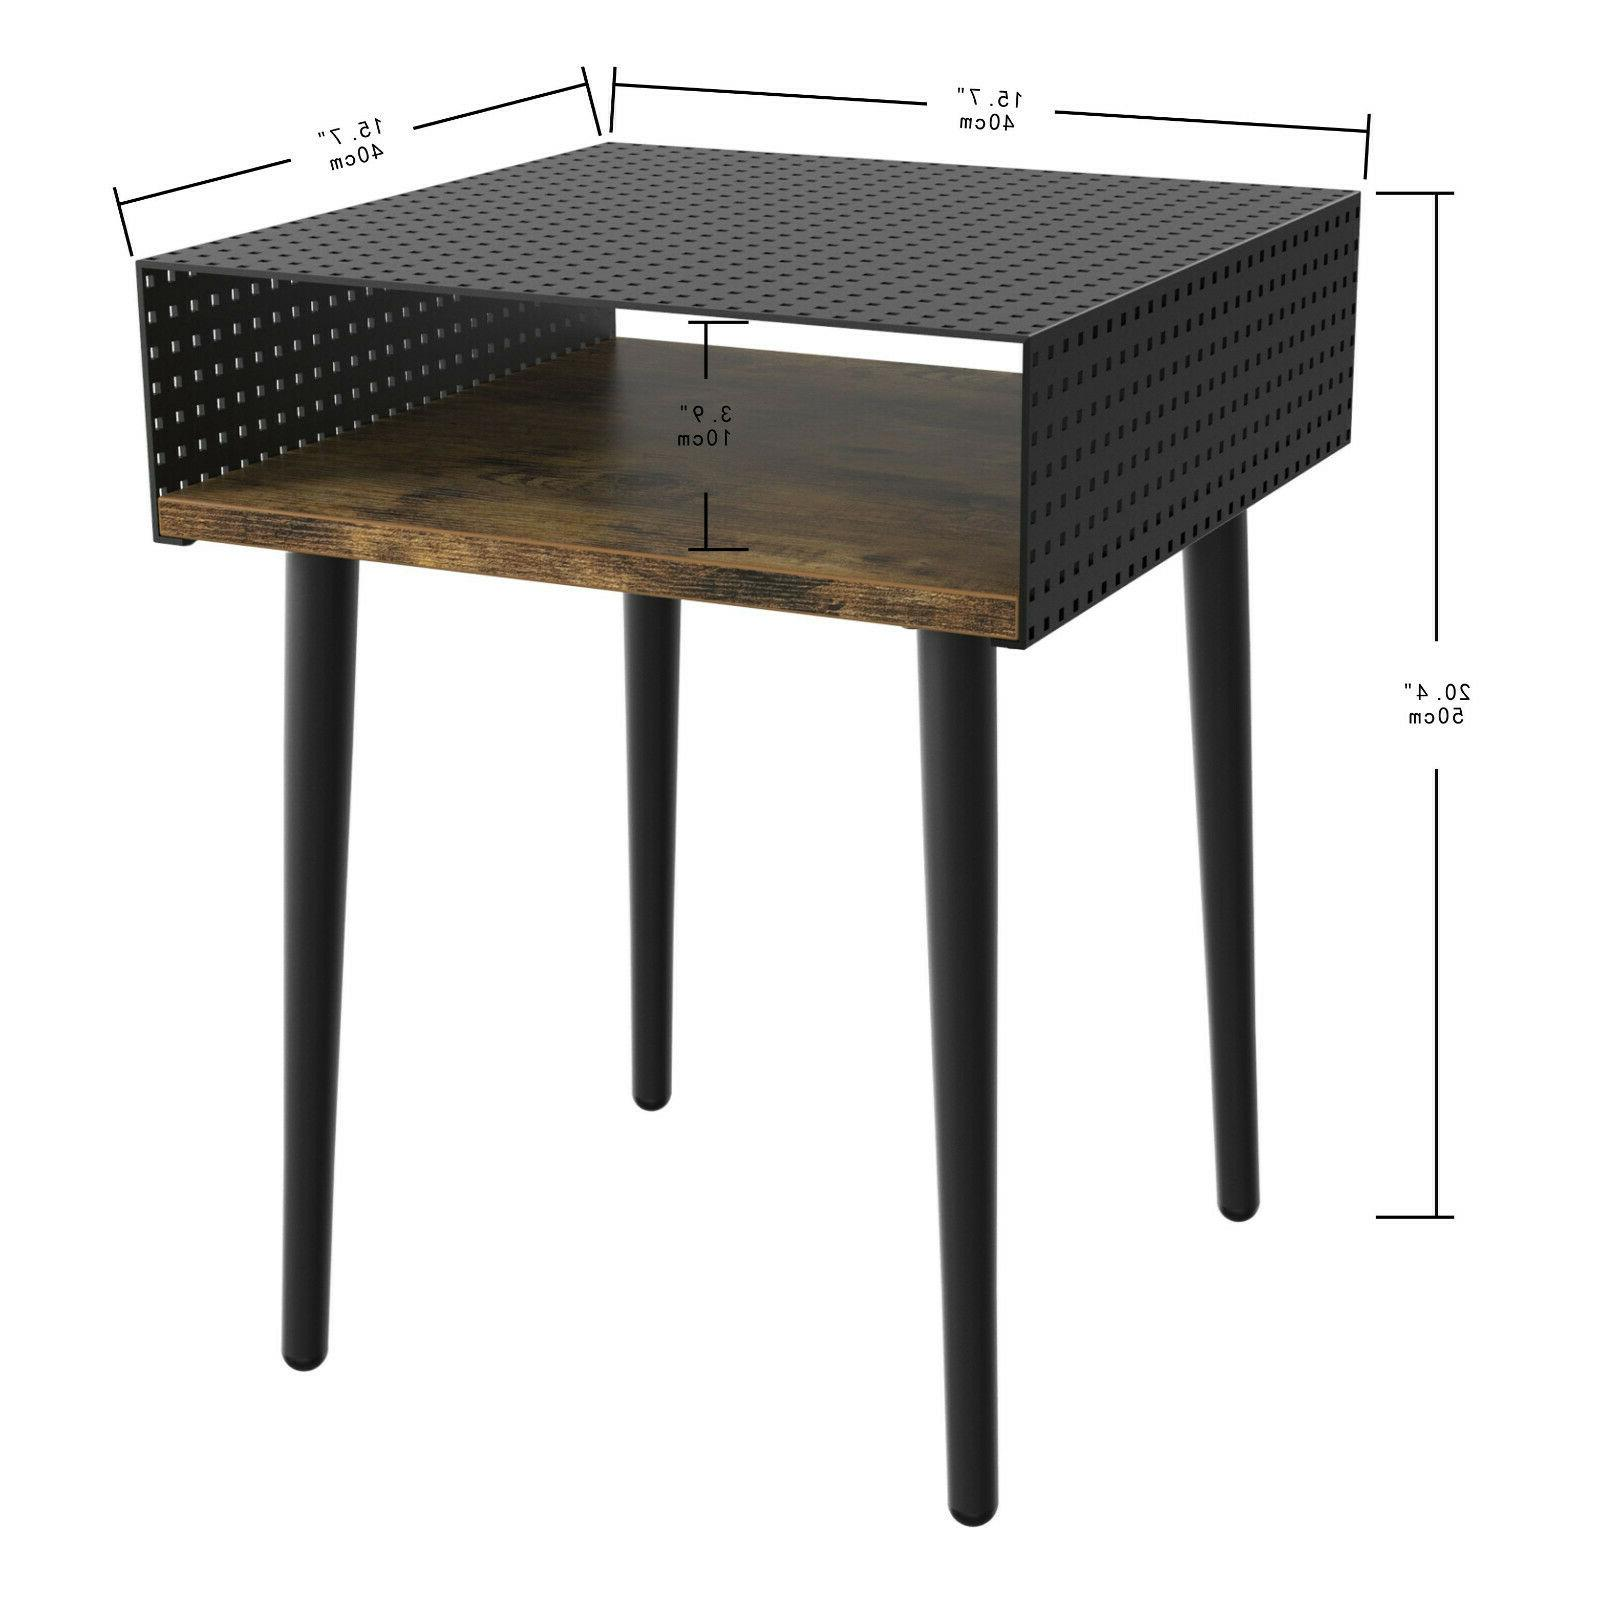 IRONCK End Room, Table Metal